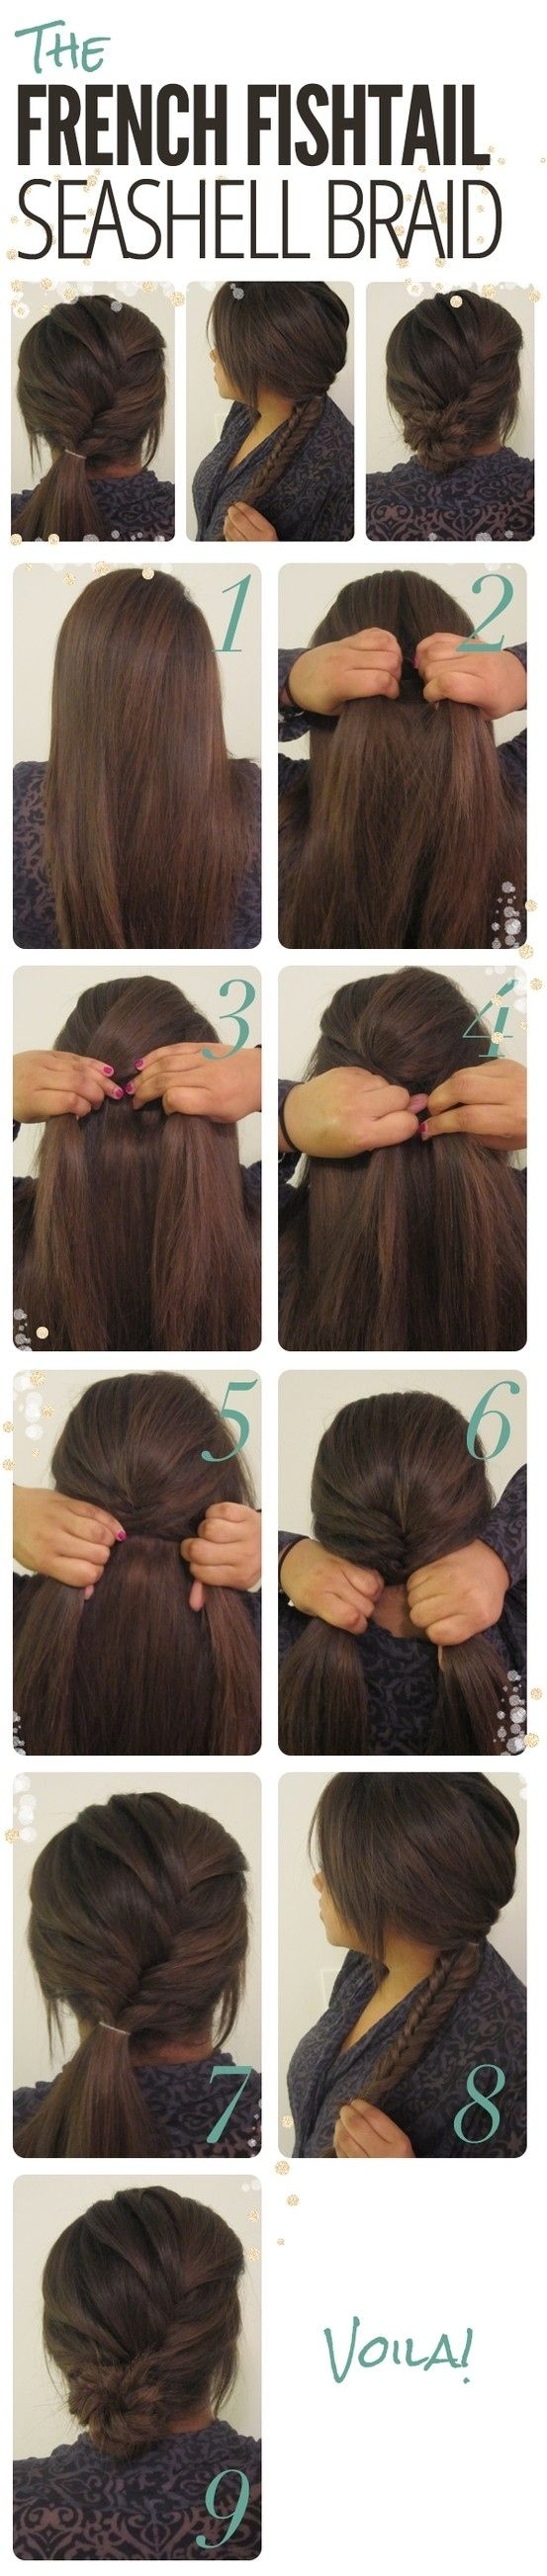 Remarkable My Hair Fishtail And Tutorials On Pinterest Hairstyle Inspiration Daily Dogsangcom